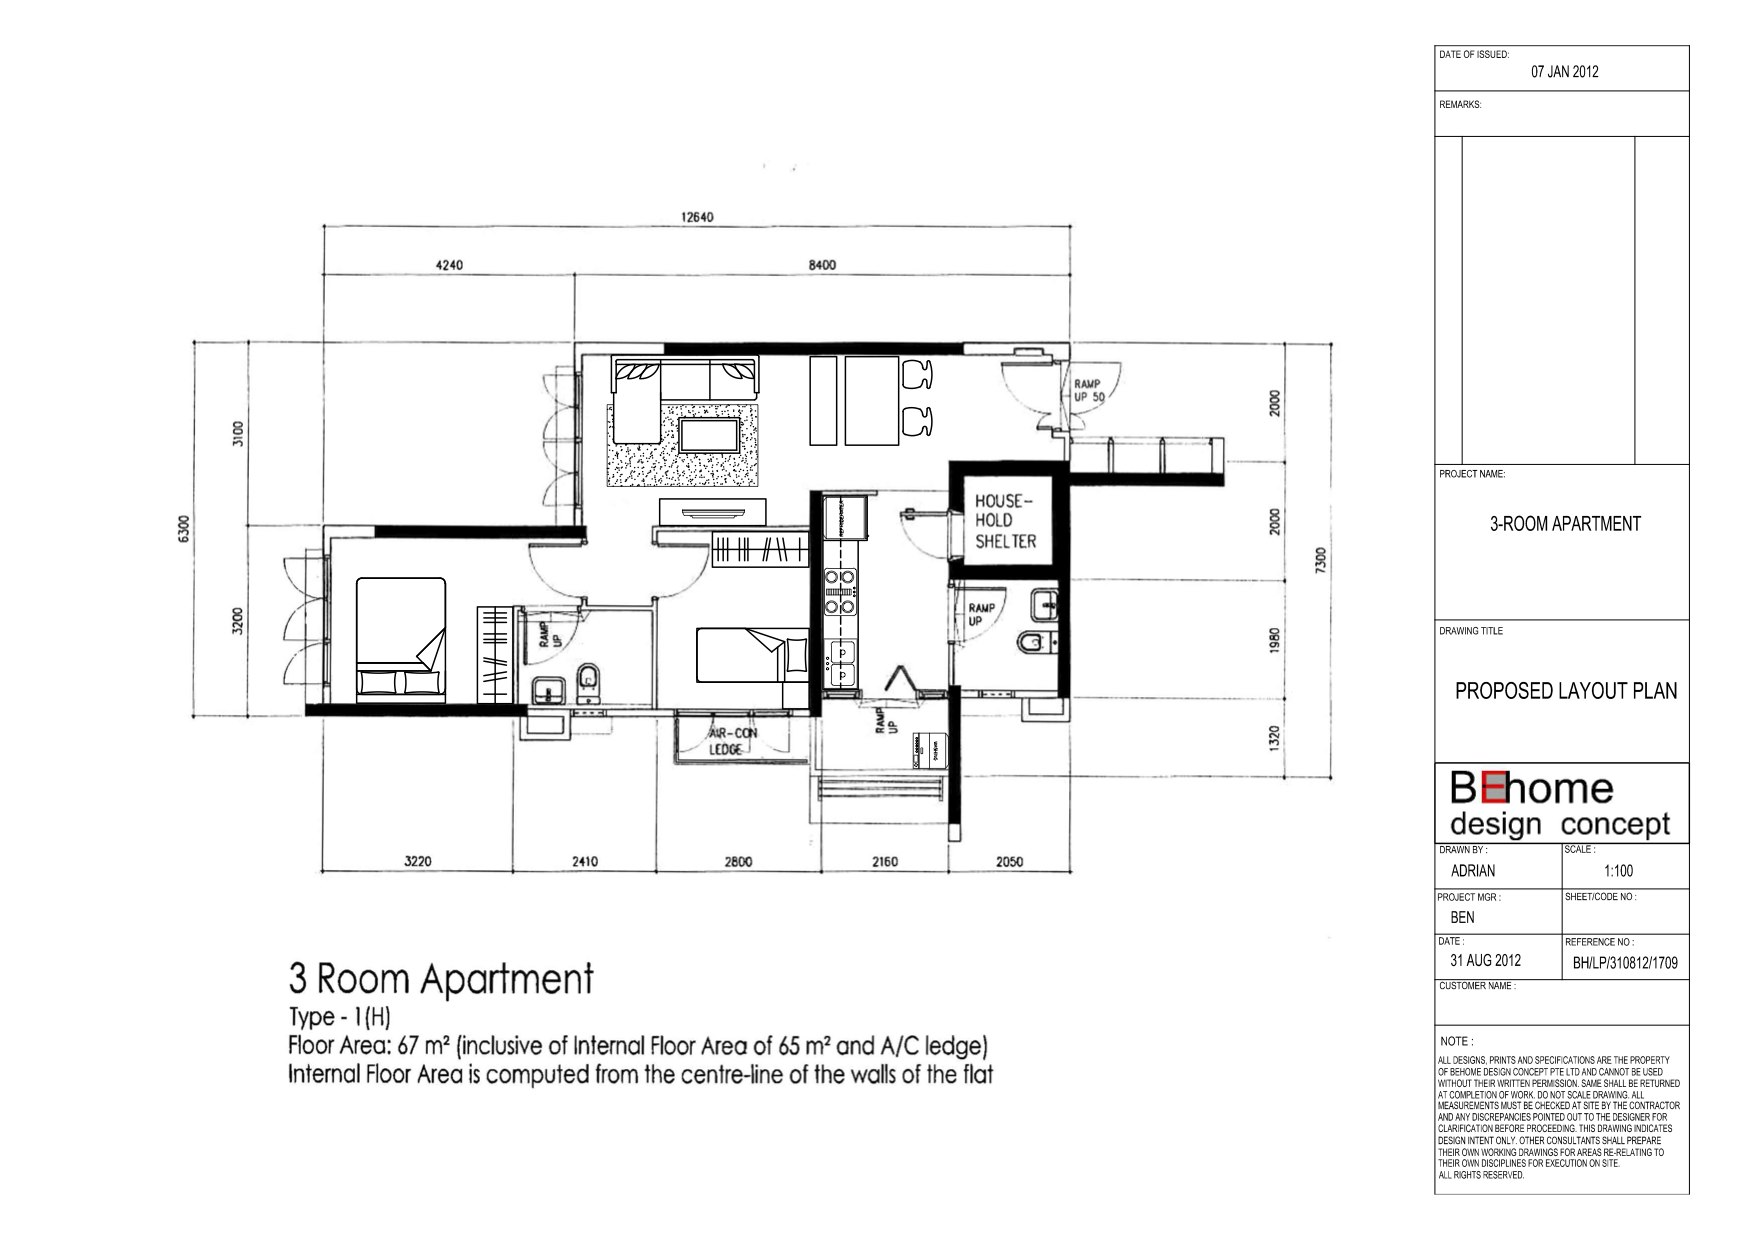 3 Room Sengkang Proposed Layout Plan Vincent Interior